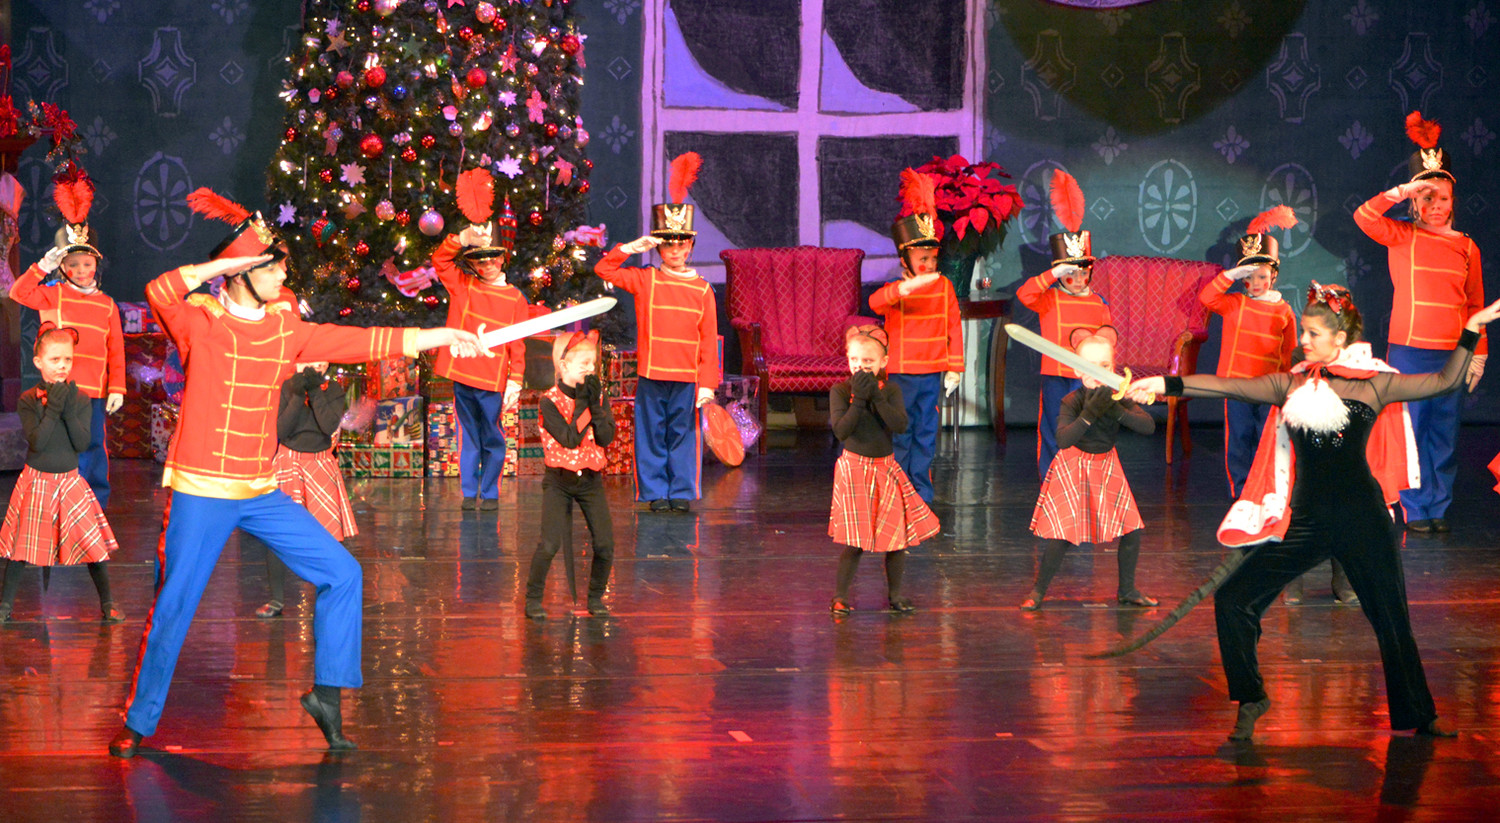 NUTCRACKER PRINCE (Gabriel Shoop) and brave toy soldiers battle the mouse queen (Lindsay Markham) and her army.